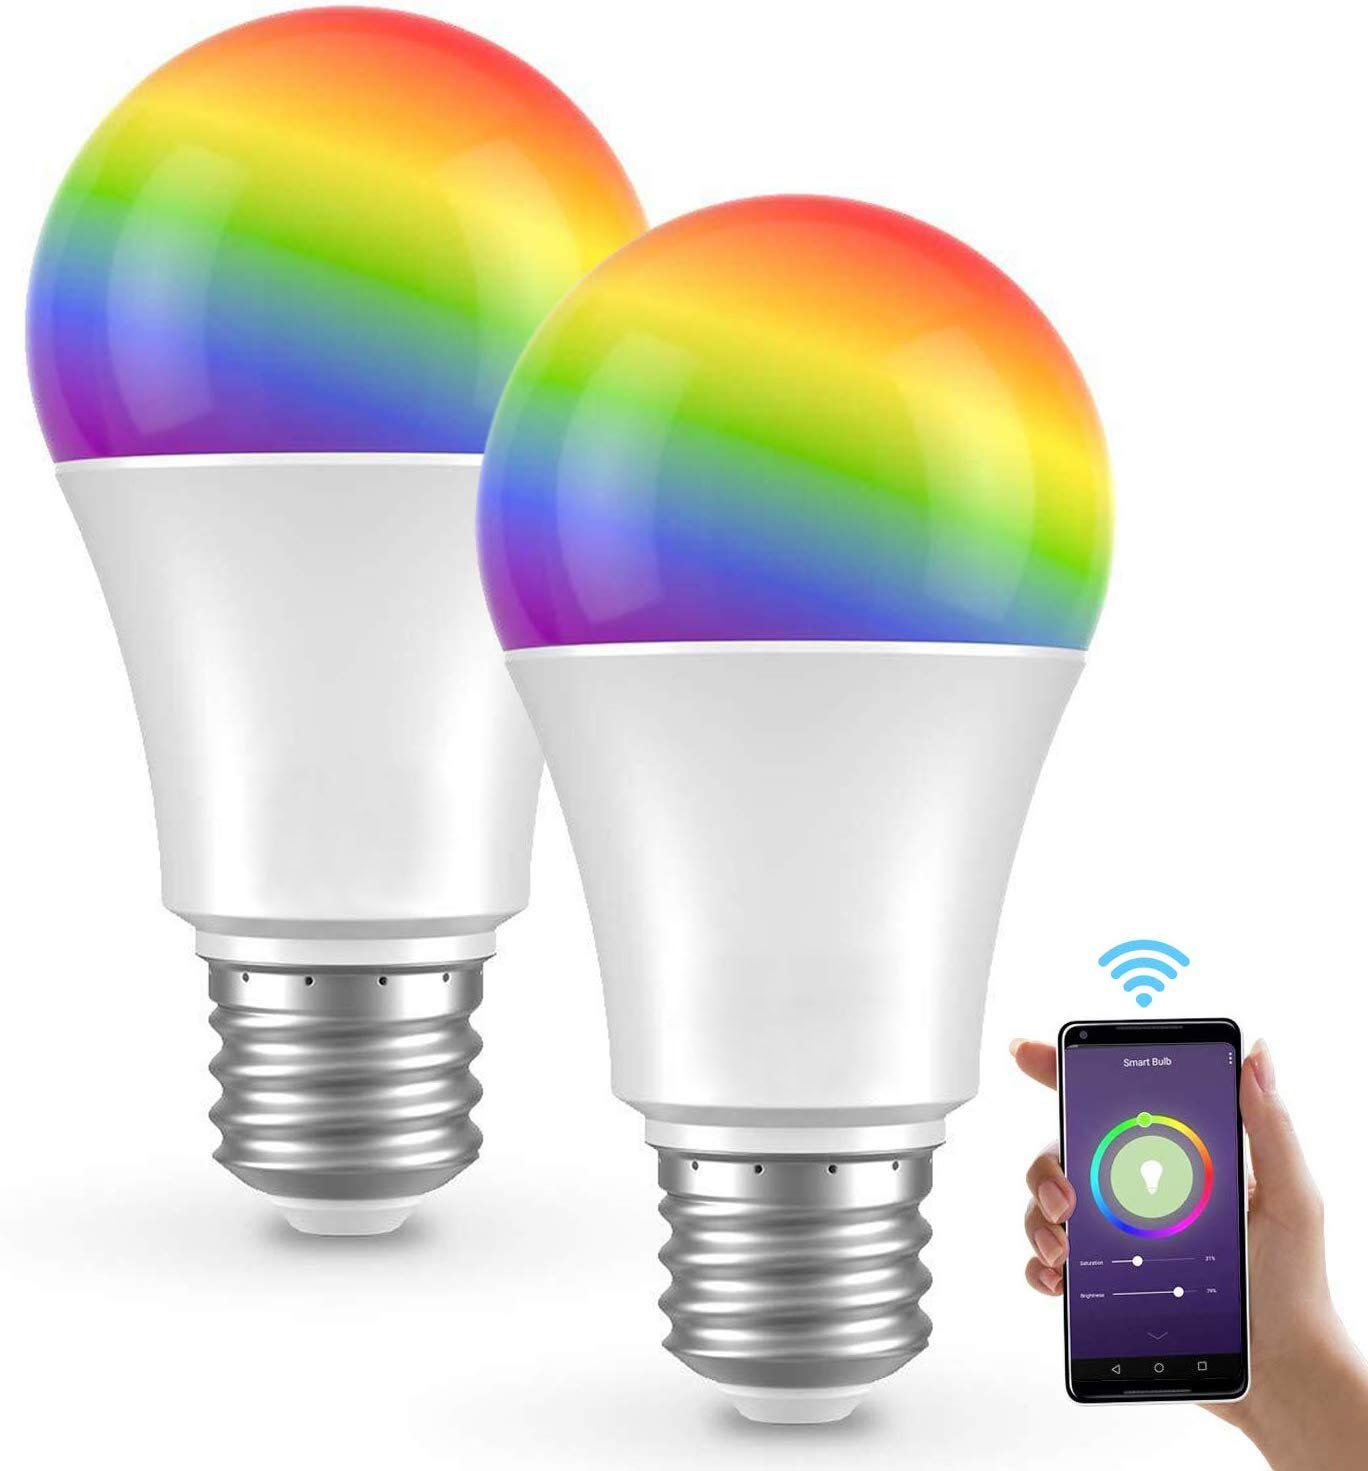 10W A19 A60 Smart WiFi Light <strong>Bulbs</strong> RGB Color Changing Smart LED Light <strong>Bulb</strong> Compatible with Alexa Google Assistant E26 E27 B22